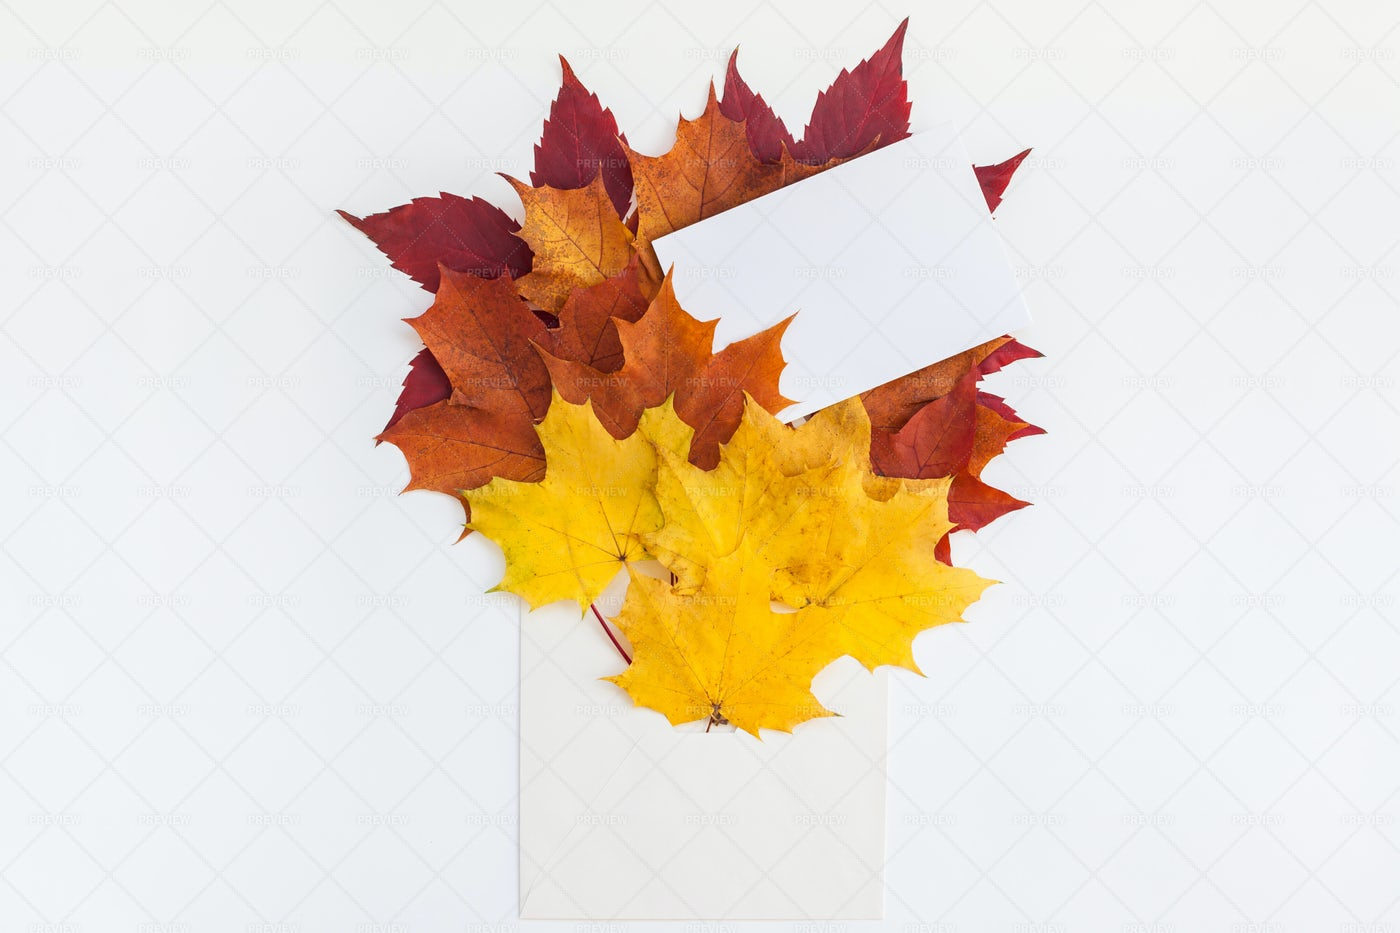 Autumn Leaves And Envelope: Stock Photos